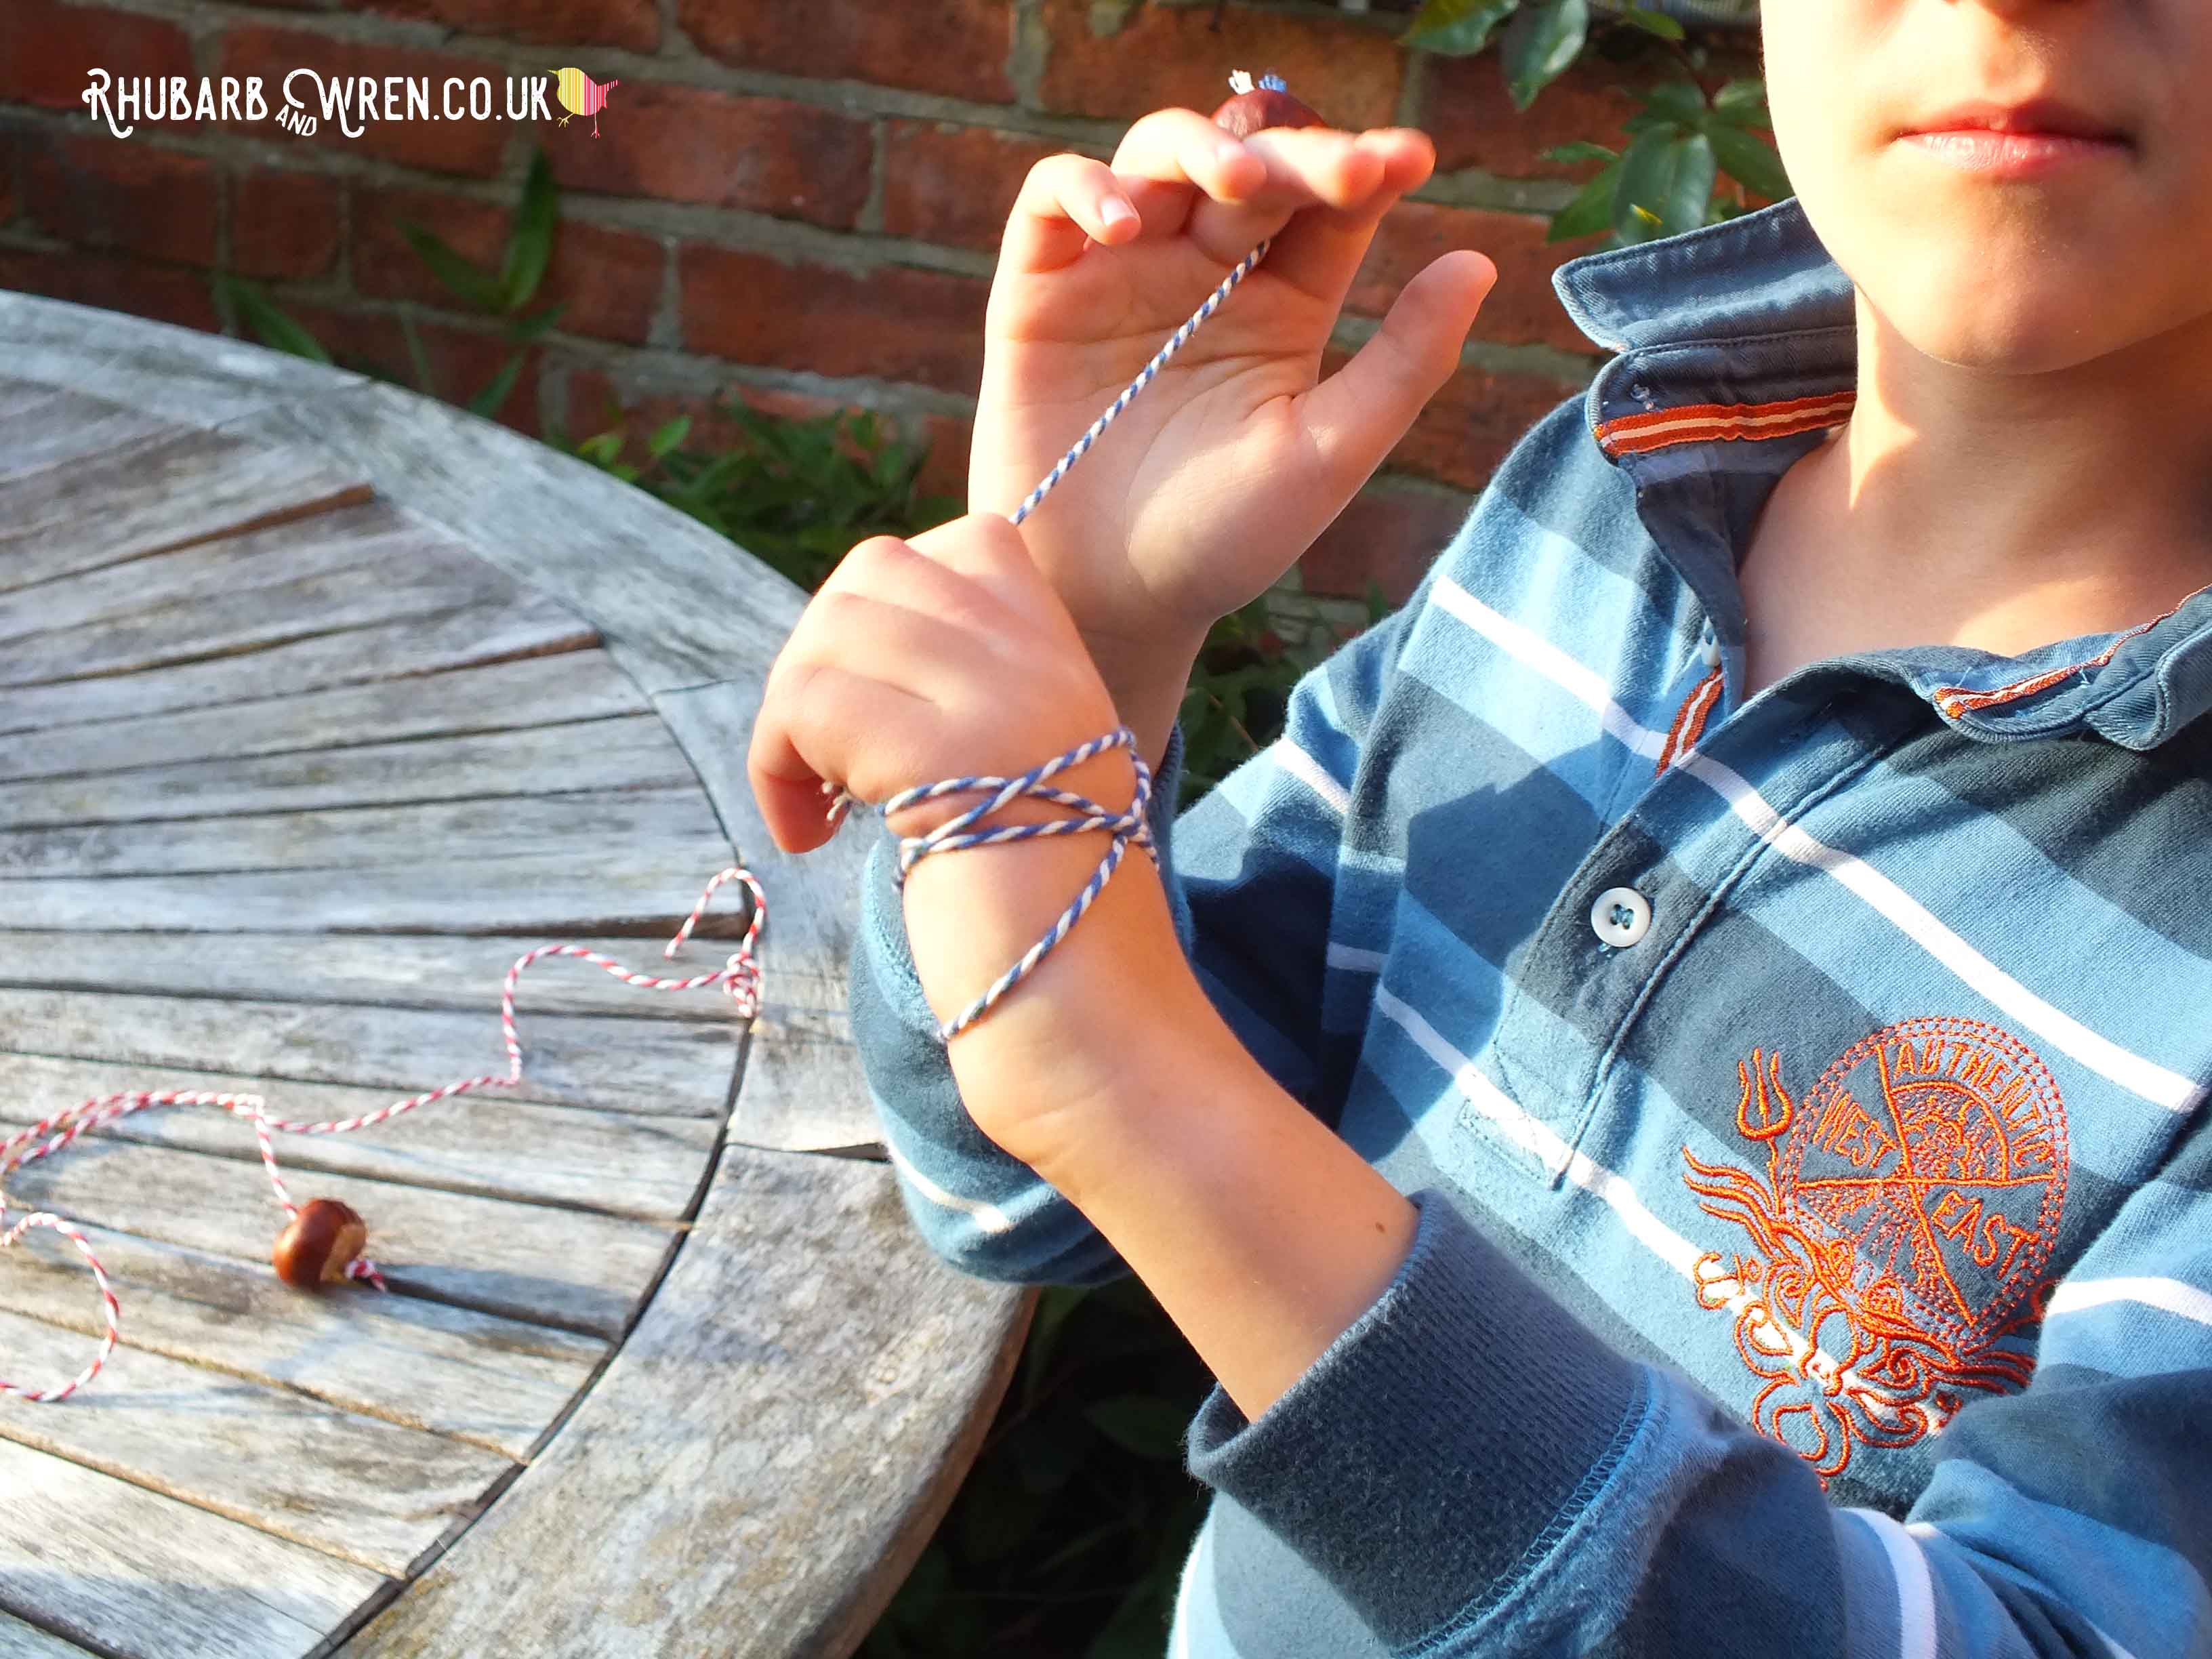 Boy playing conkers - holding horse chestnut threaded onto string.